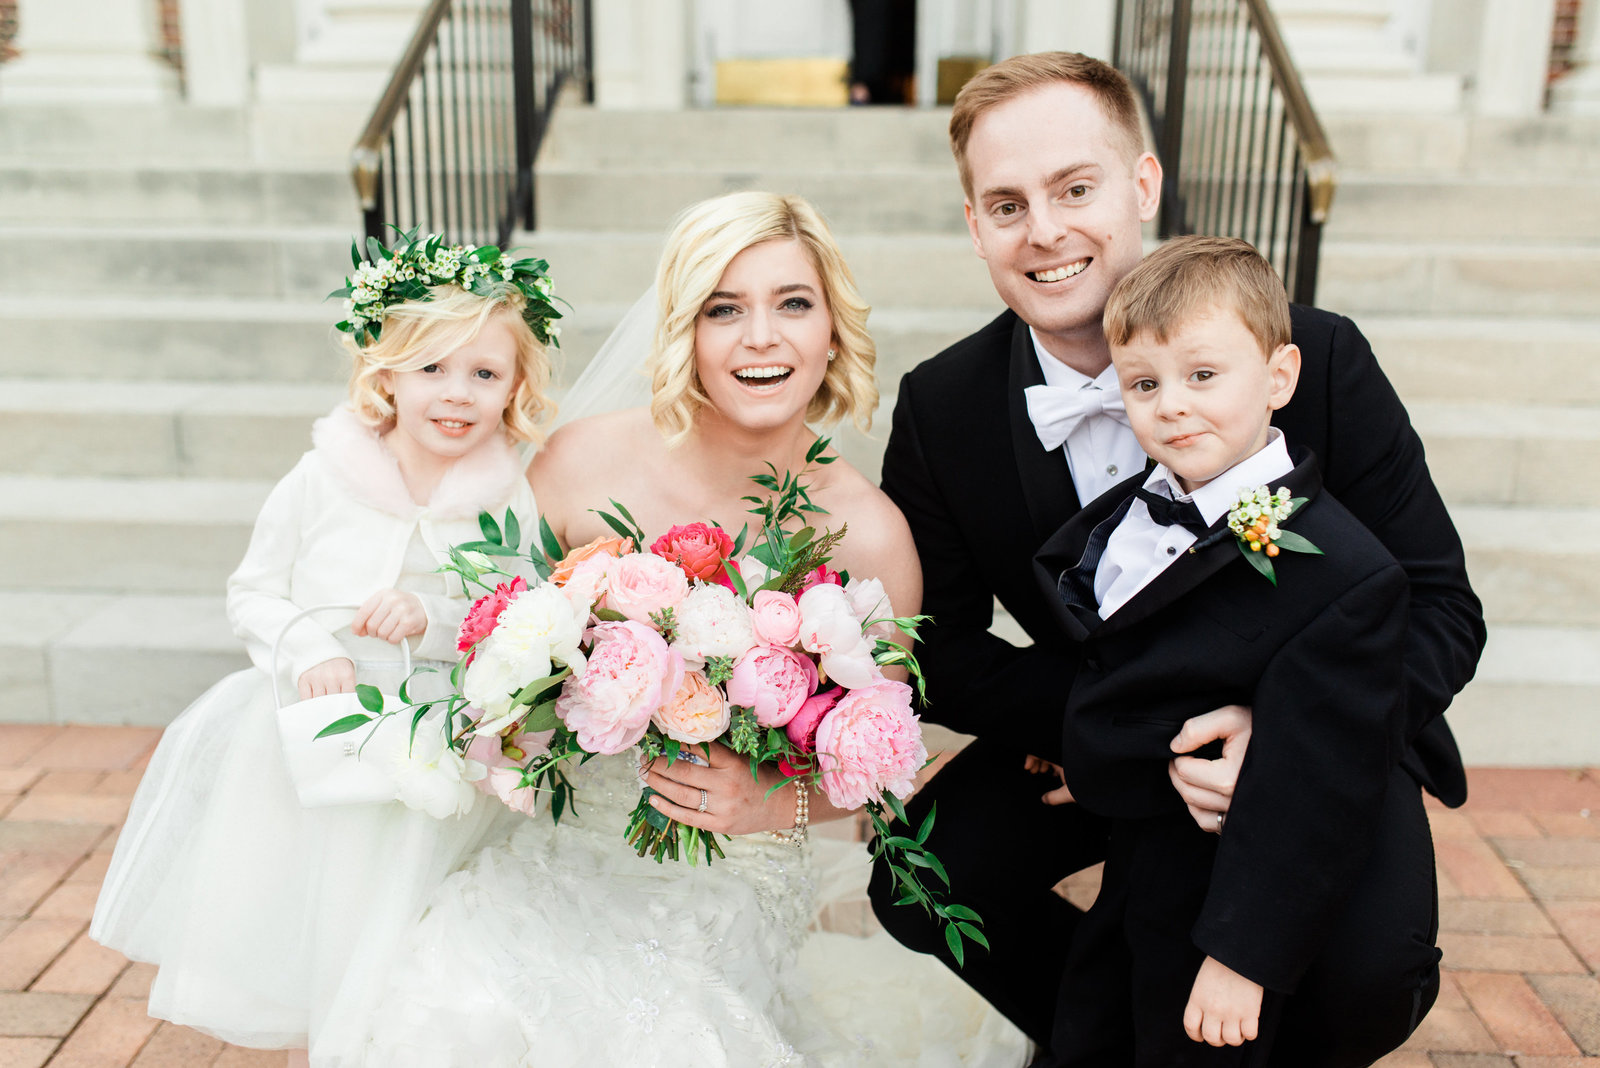 bride and groom with their flower girl and ring bearer